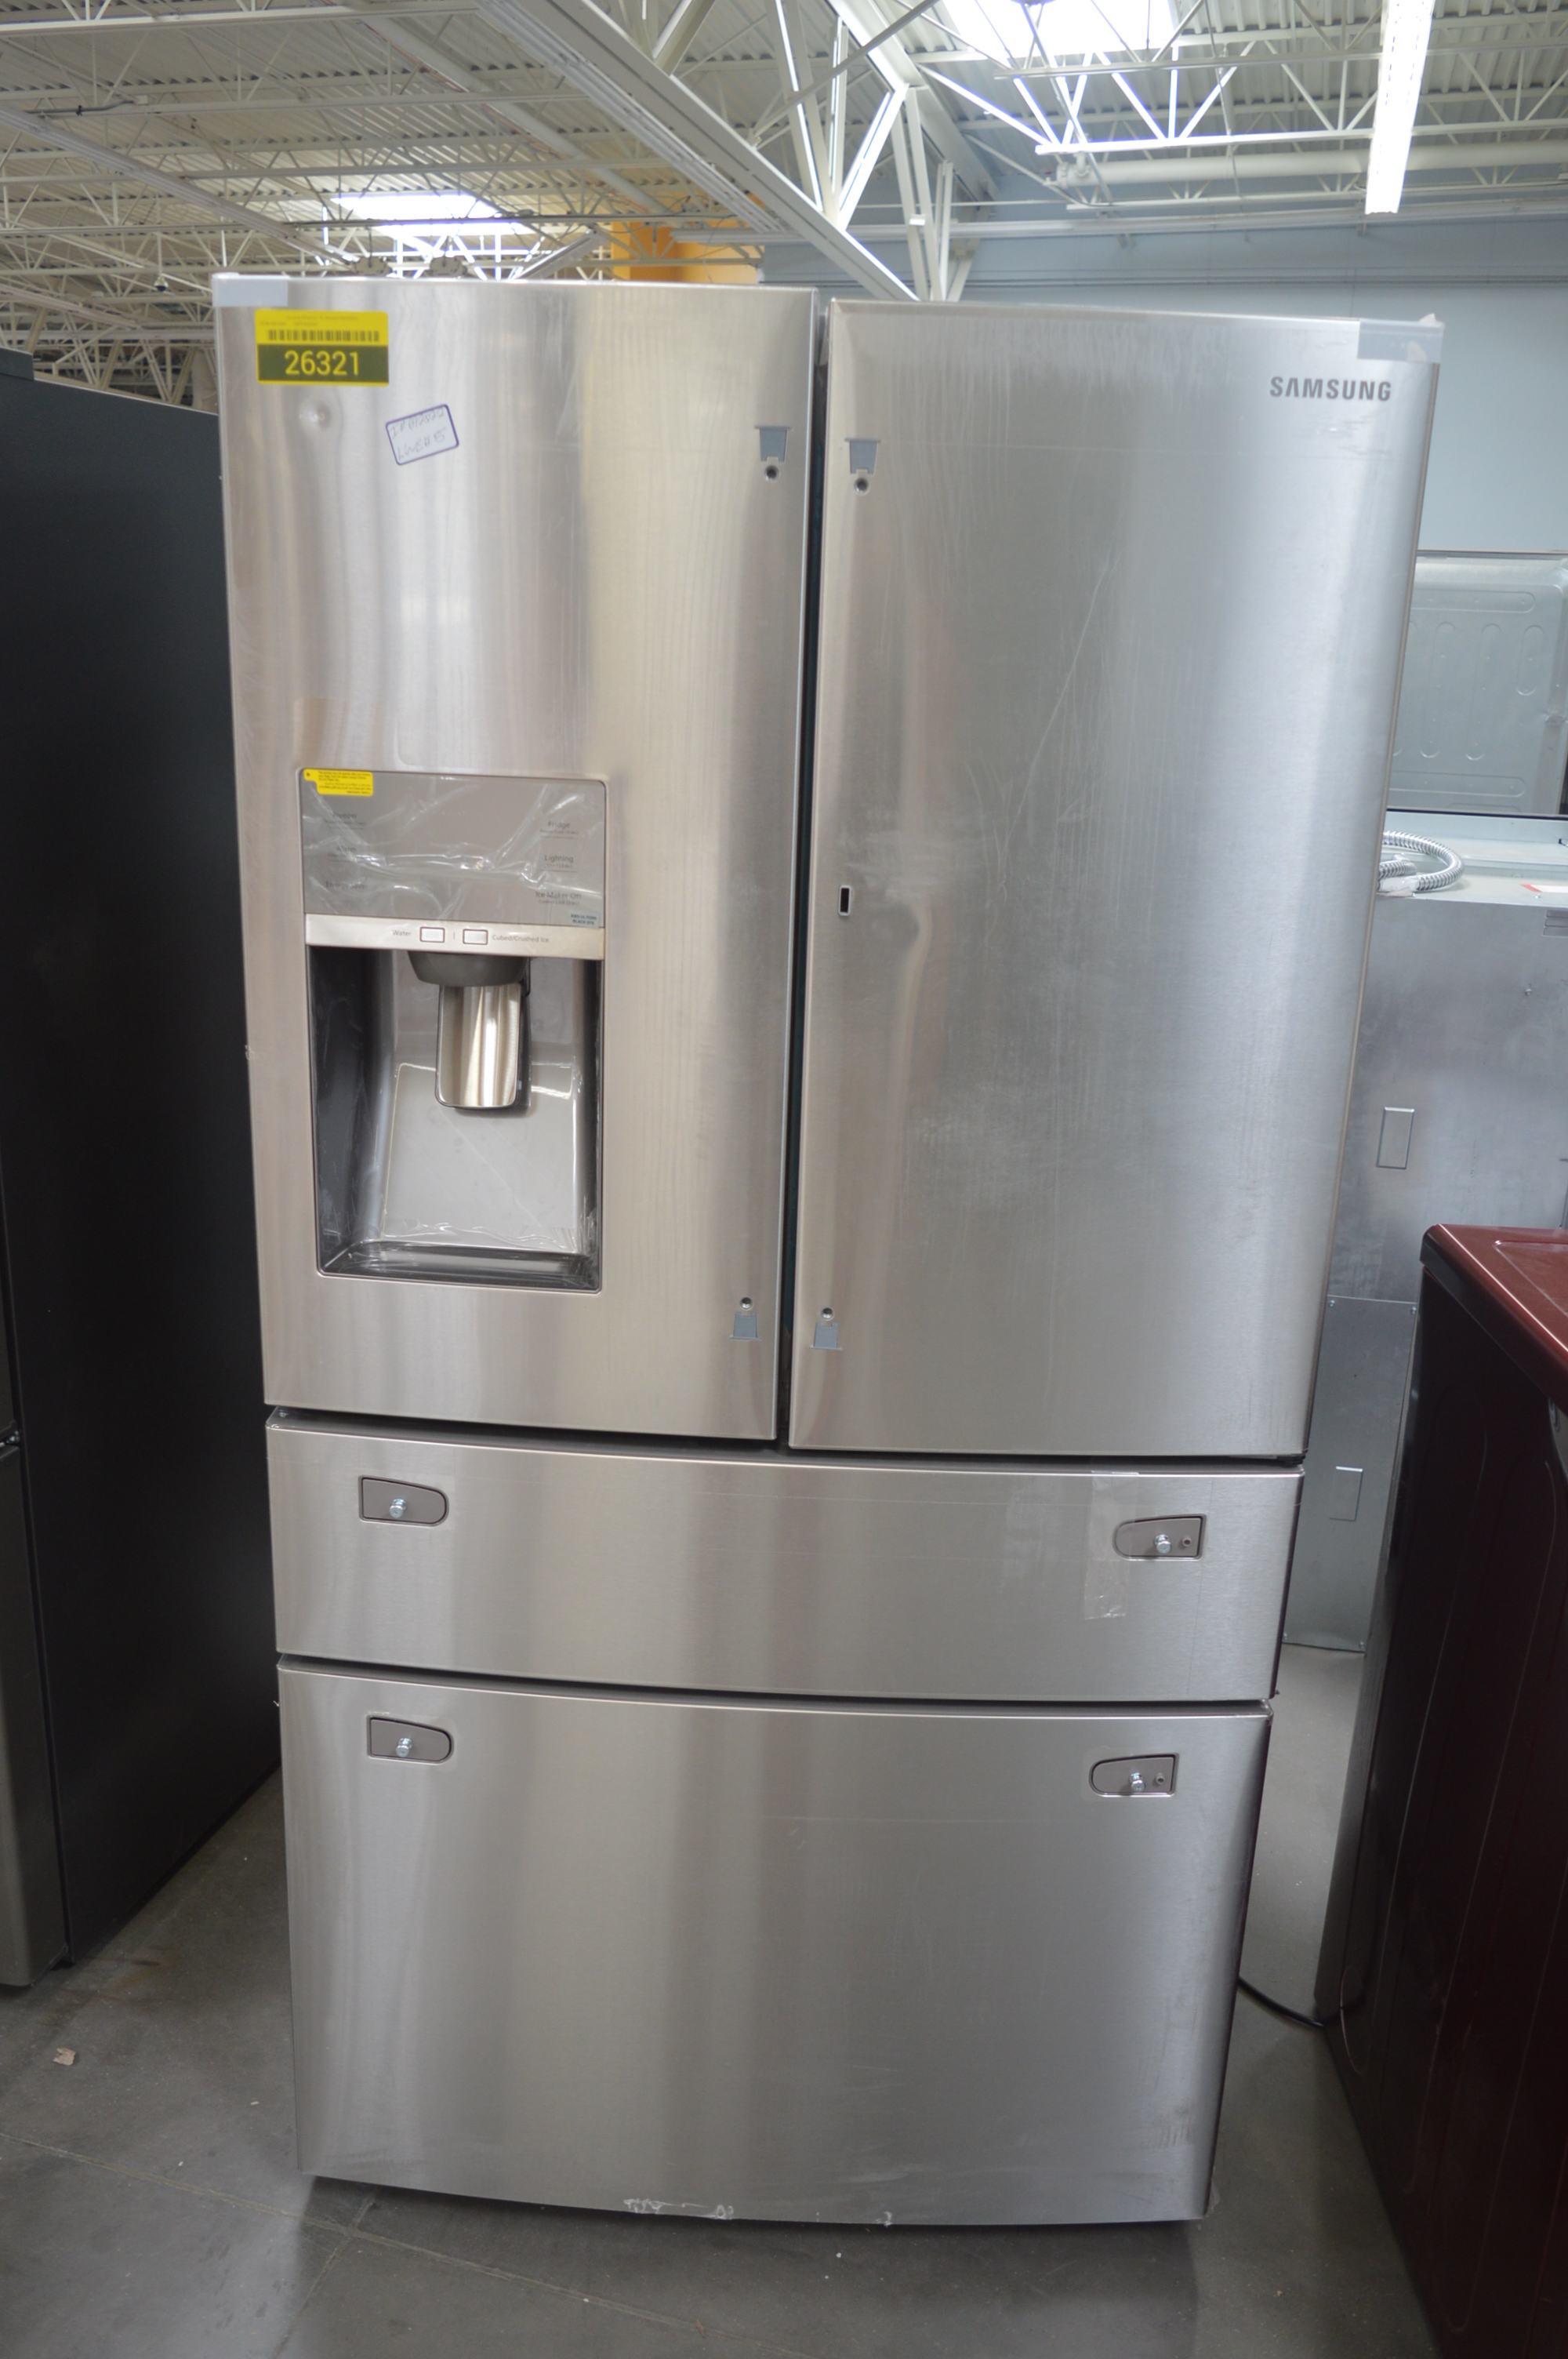 Samsung Rf28jbedbsr 36 Quot Stainless French Door Refrigerator